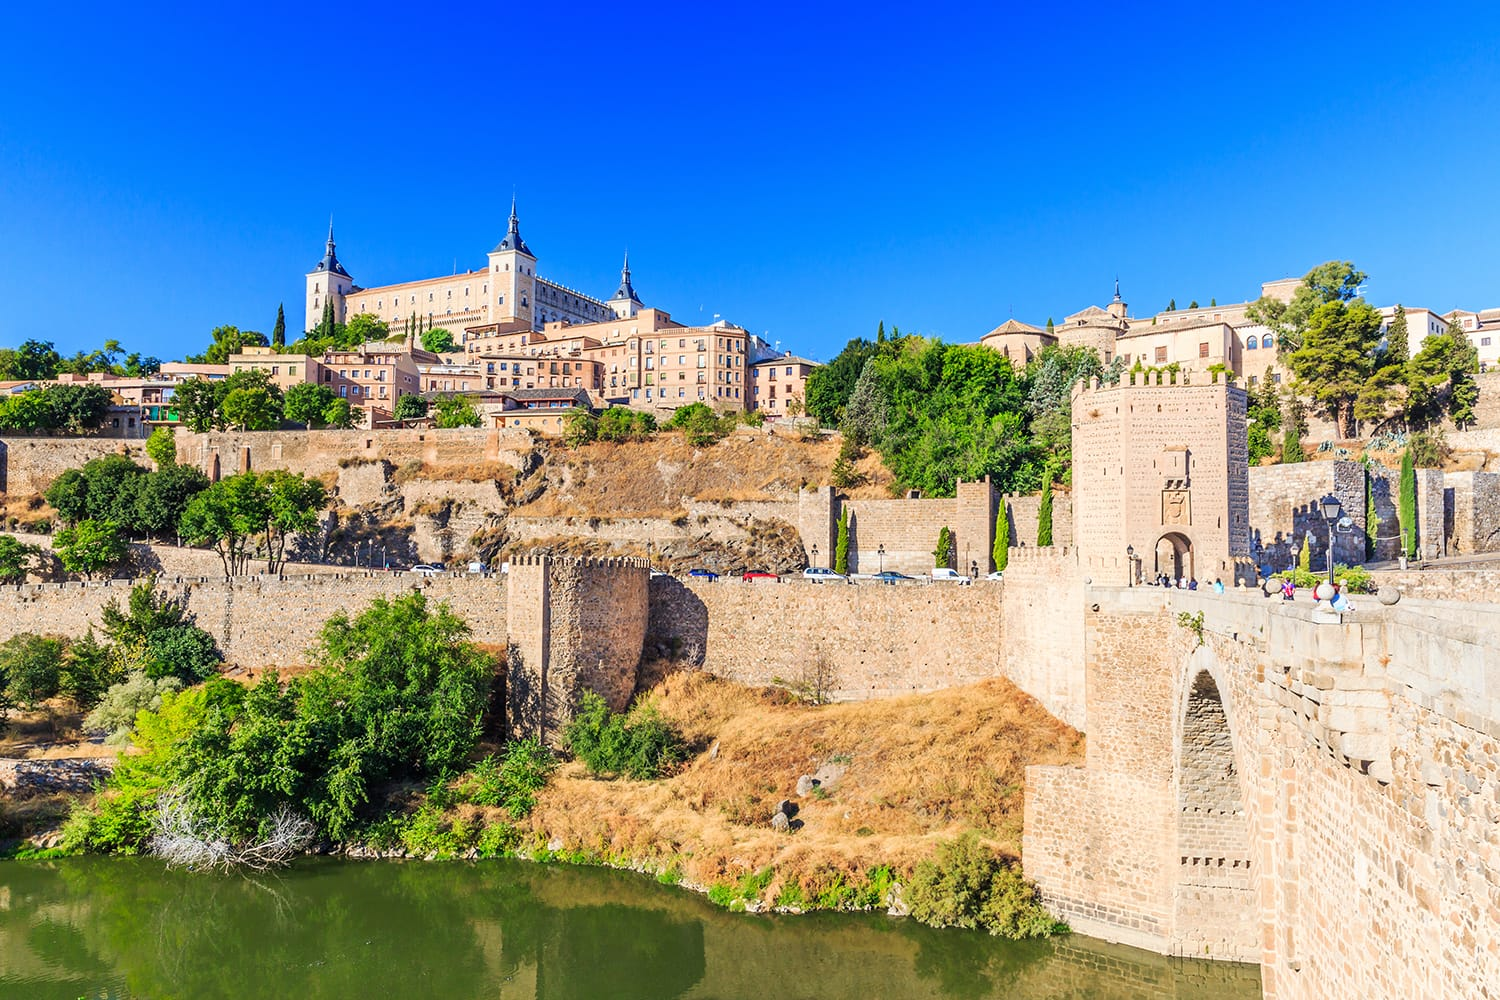 Toledo, Spain. Panoramic view of the old city and its Alcazar(Royal Palace)